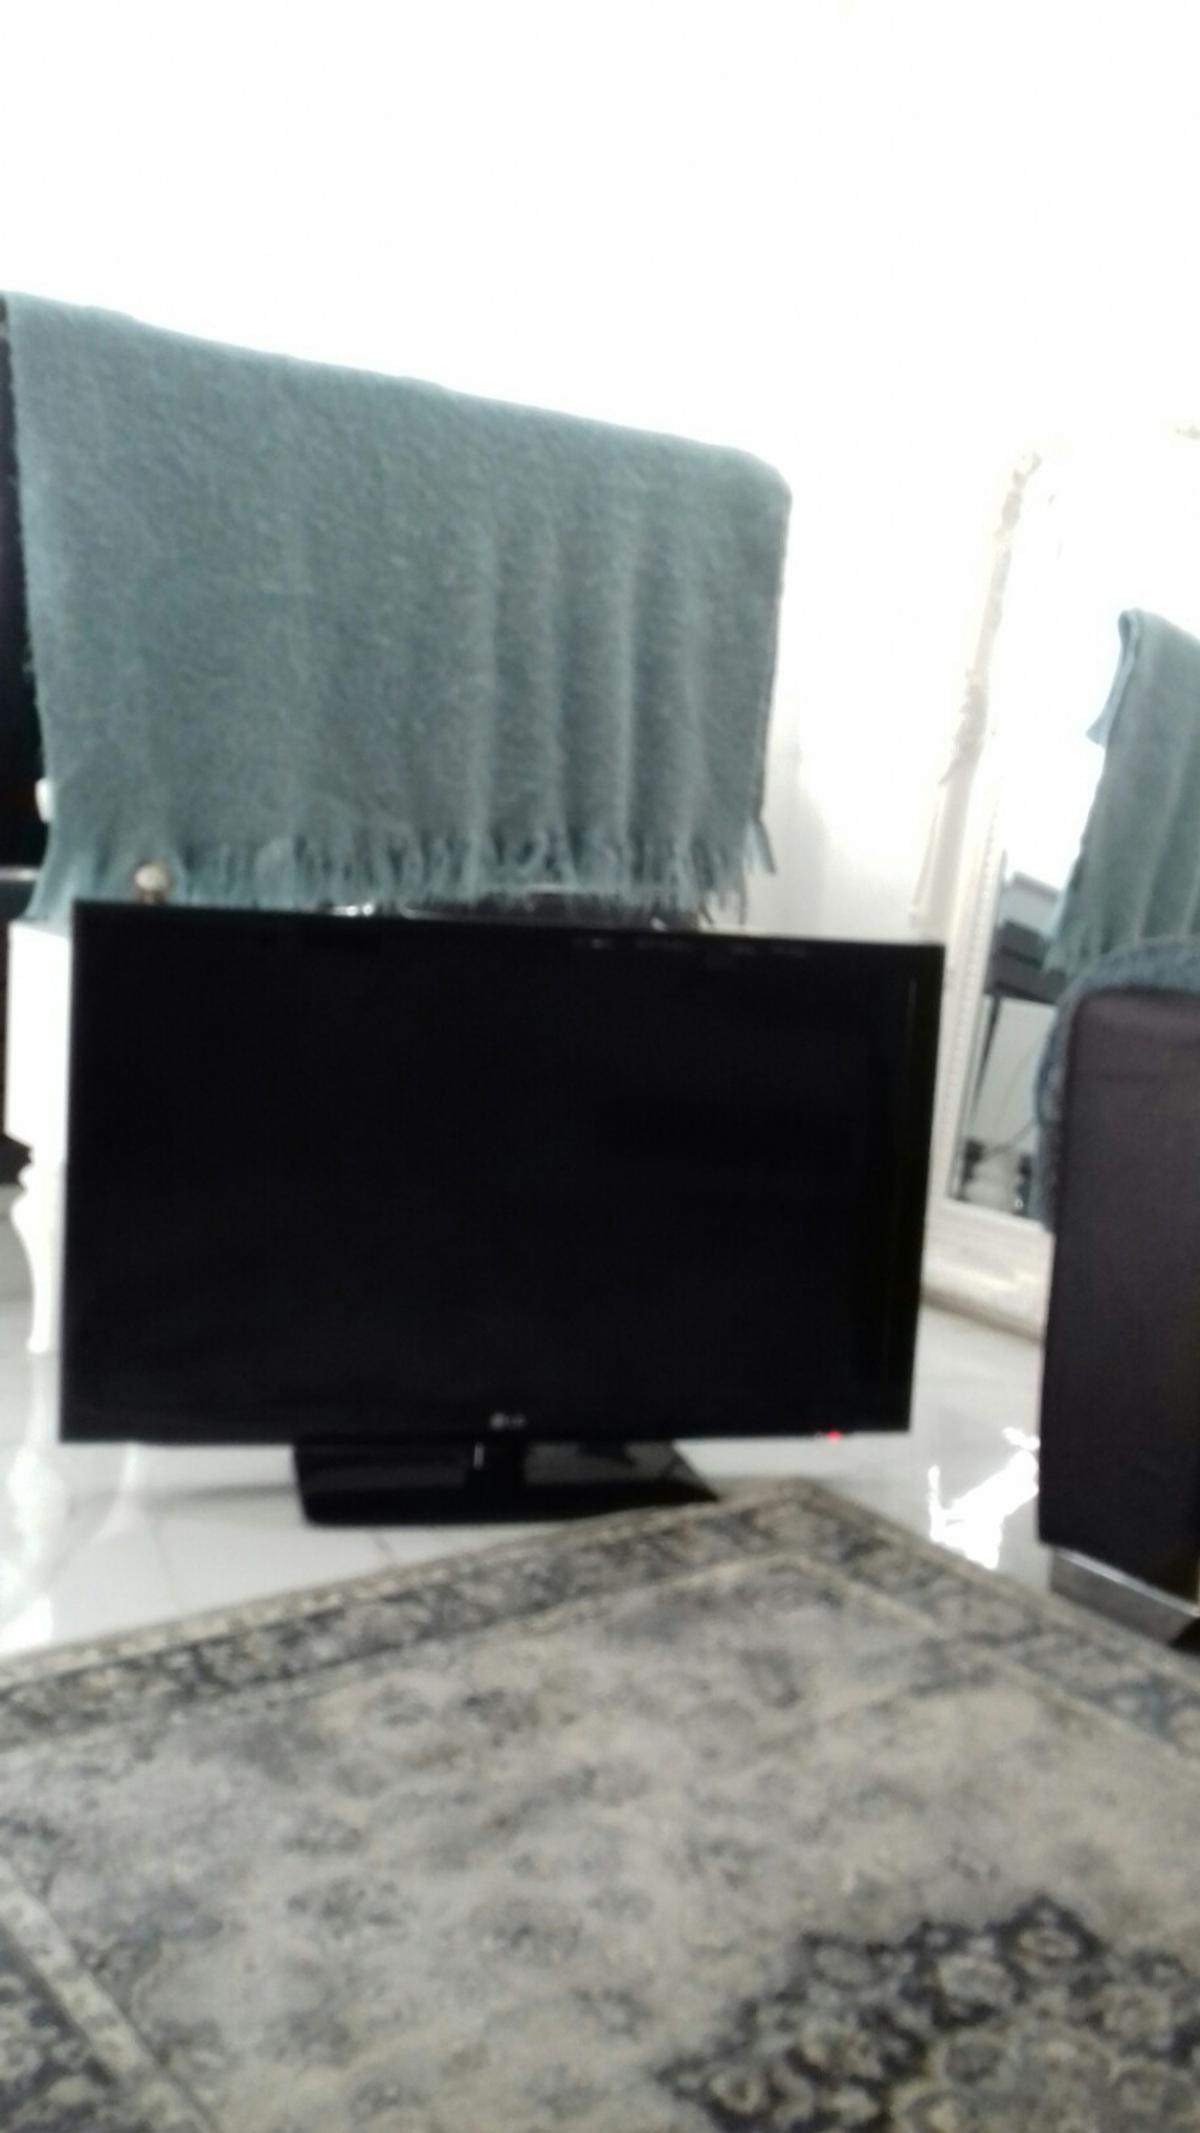 40 INCH LG TV GOOD WORKING ORDER SELLING DEW TO DOWNSIIZING HOUSE COLLECT ONLY NO TIME WASTERS PLEASE